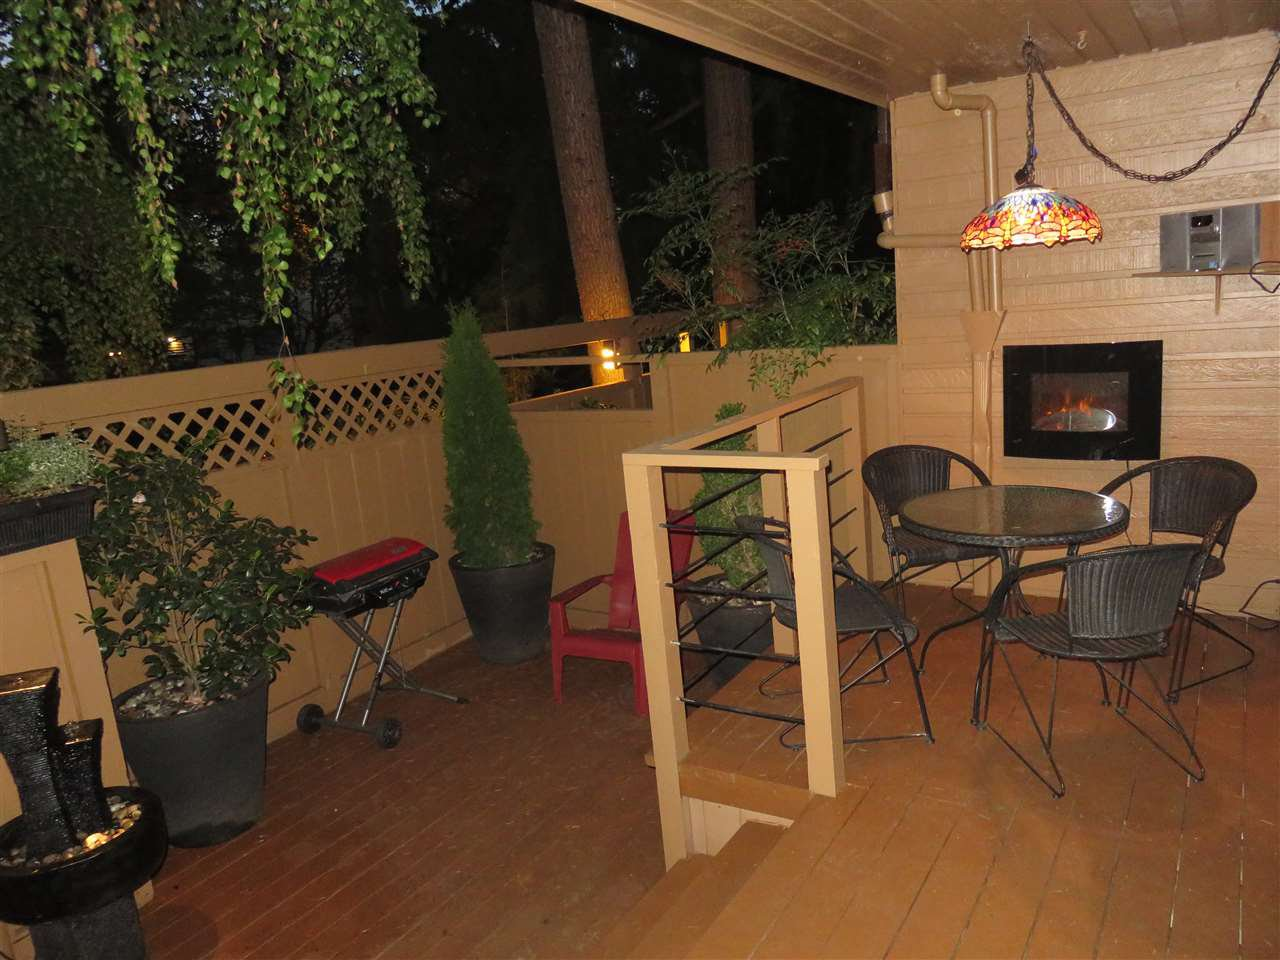 """Main Photo: 101 1930 W 3RD Avenue in Vancouver: Kitsilano Condo for sale in """"WESTVIEW"""" (Vancouver West)  : MLS®# R2169188"""